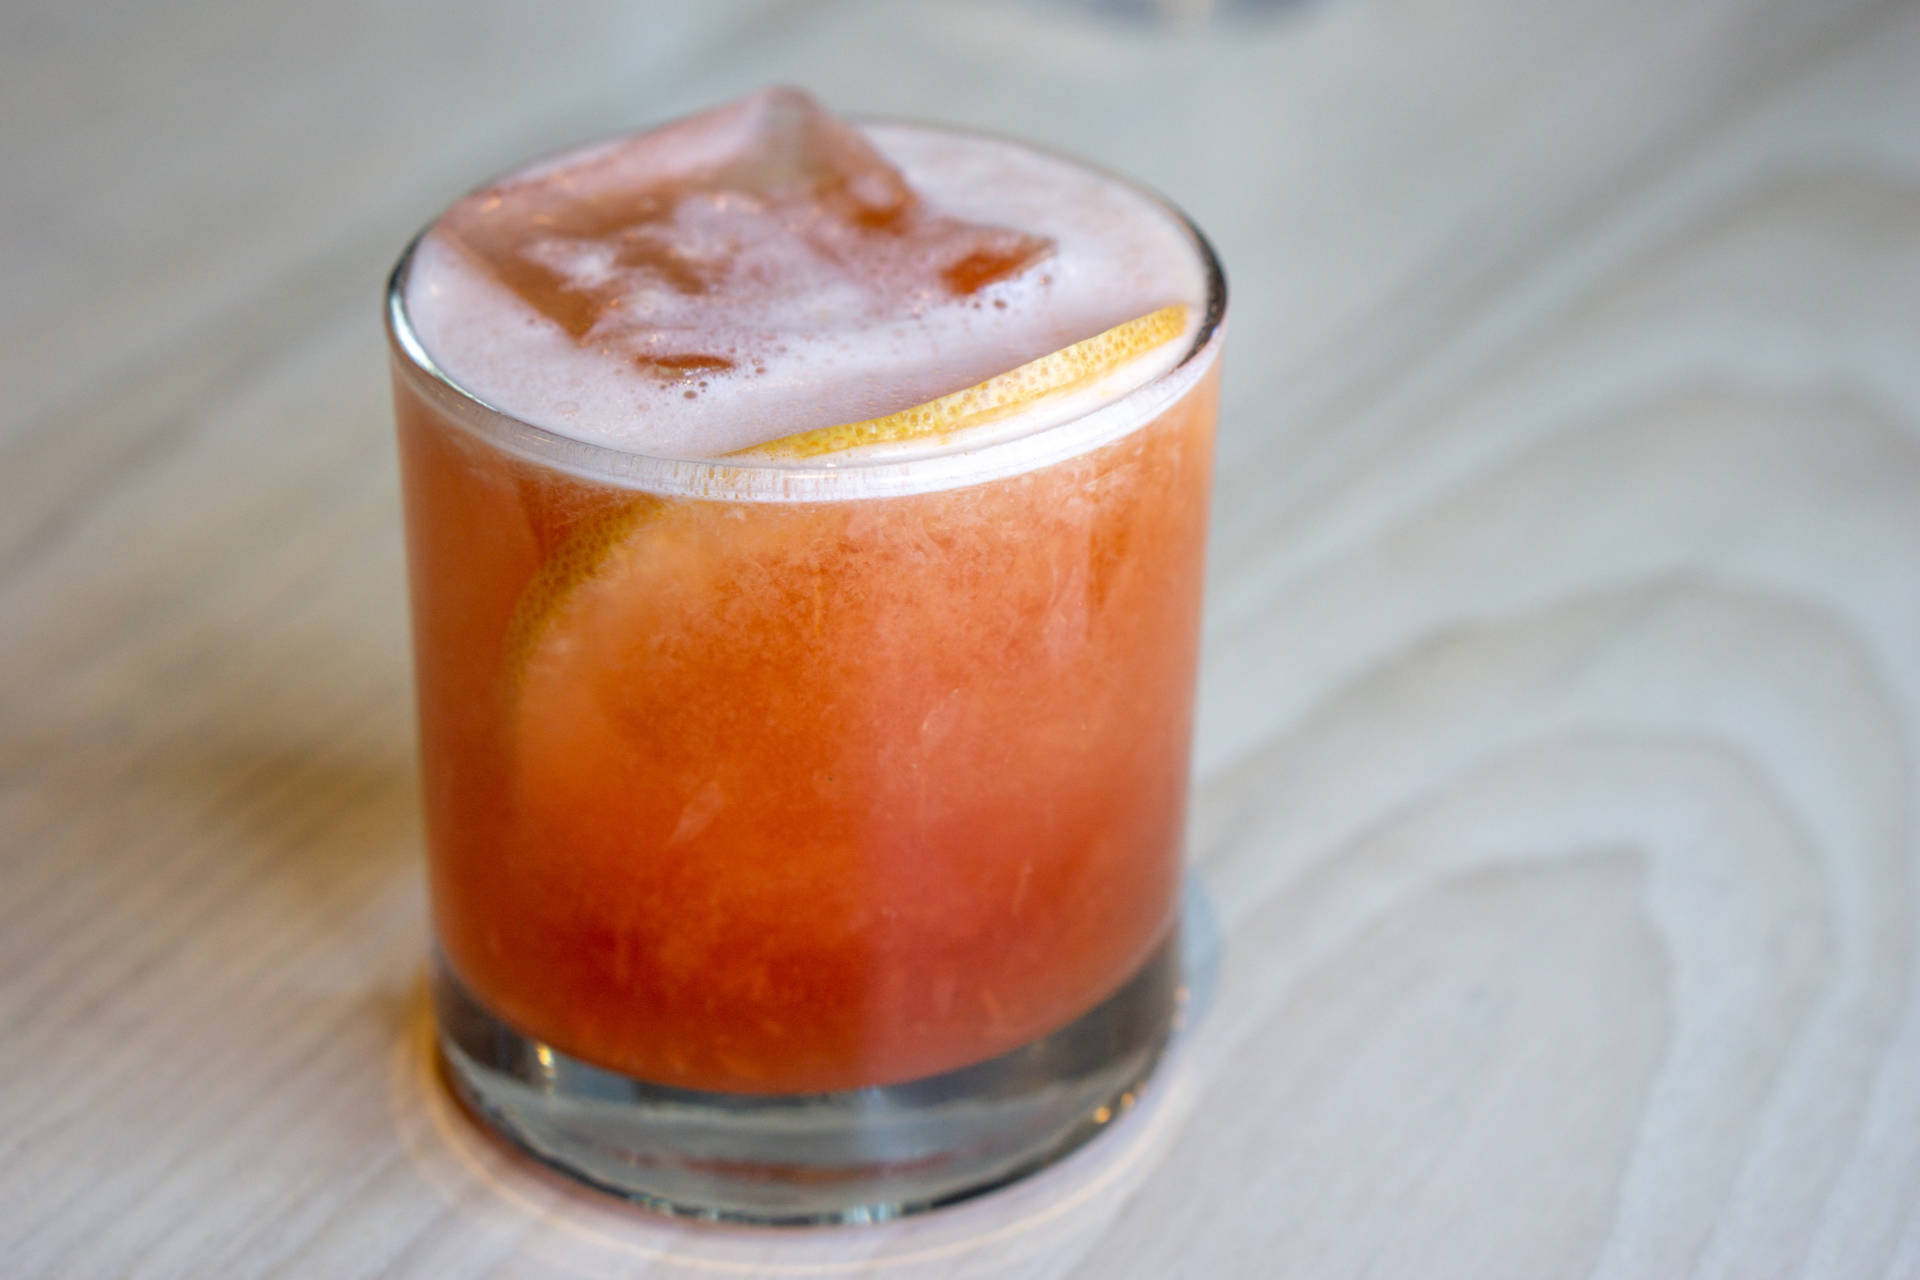 Strong's on the spot juiced grapefruit-forward Italian Greyhound with Cappelletti and Bruto Americano.